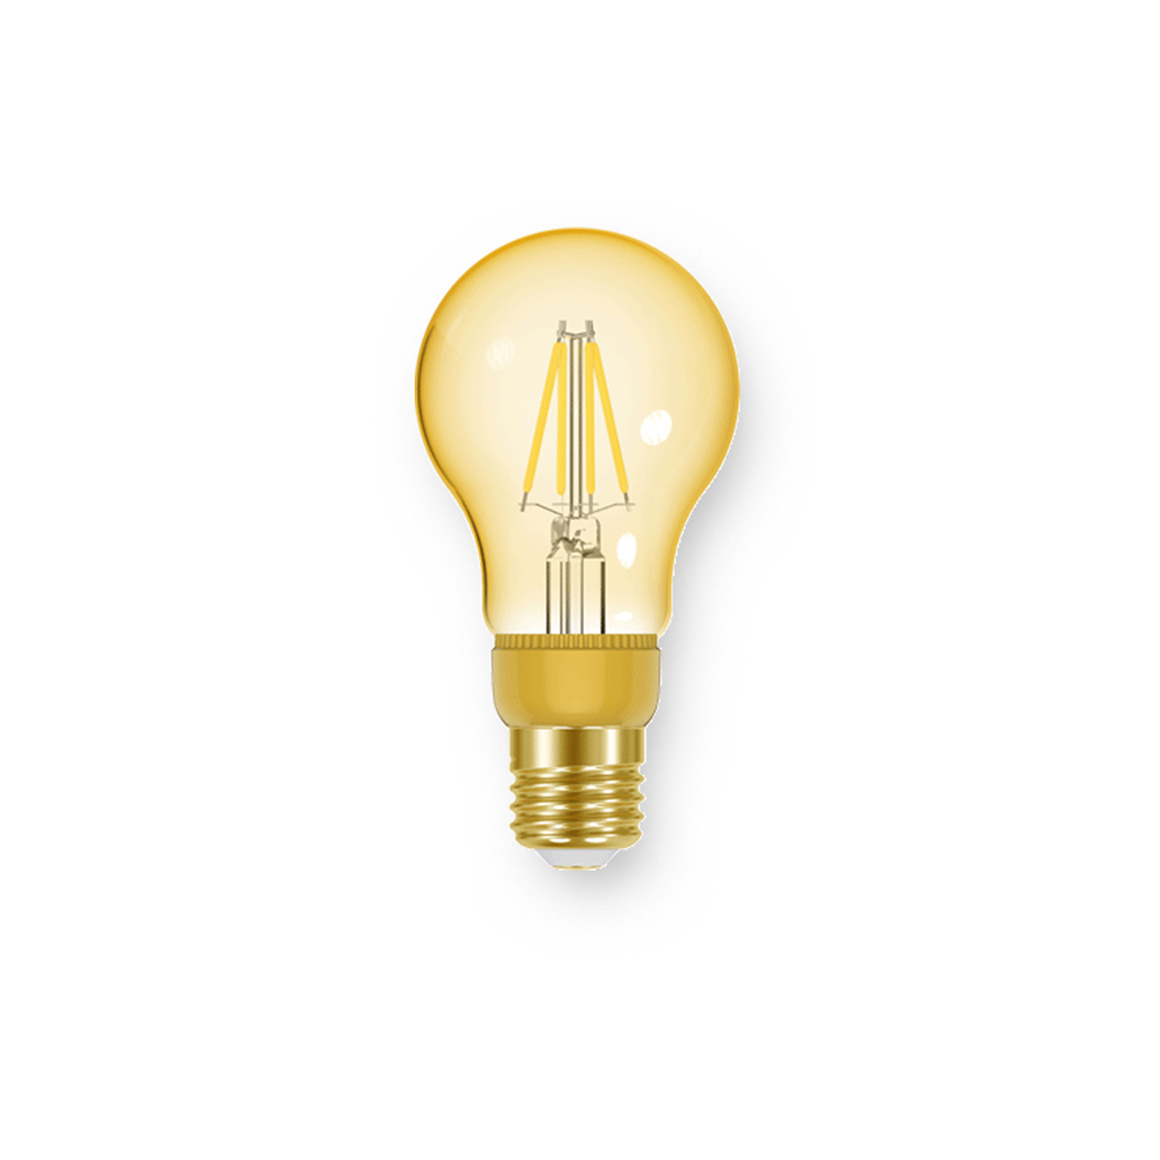 Filament A60 Vintage 350lm Dimmable E27